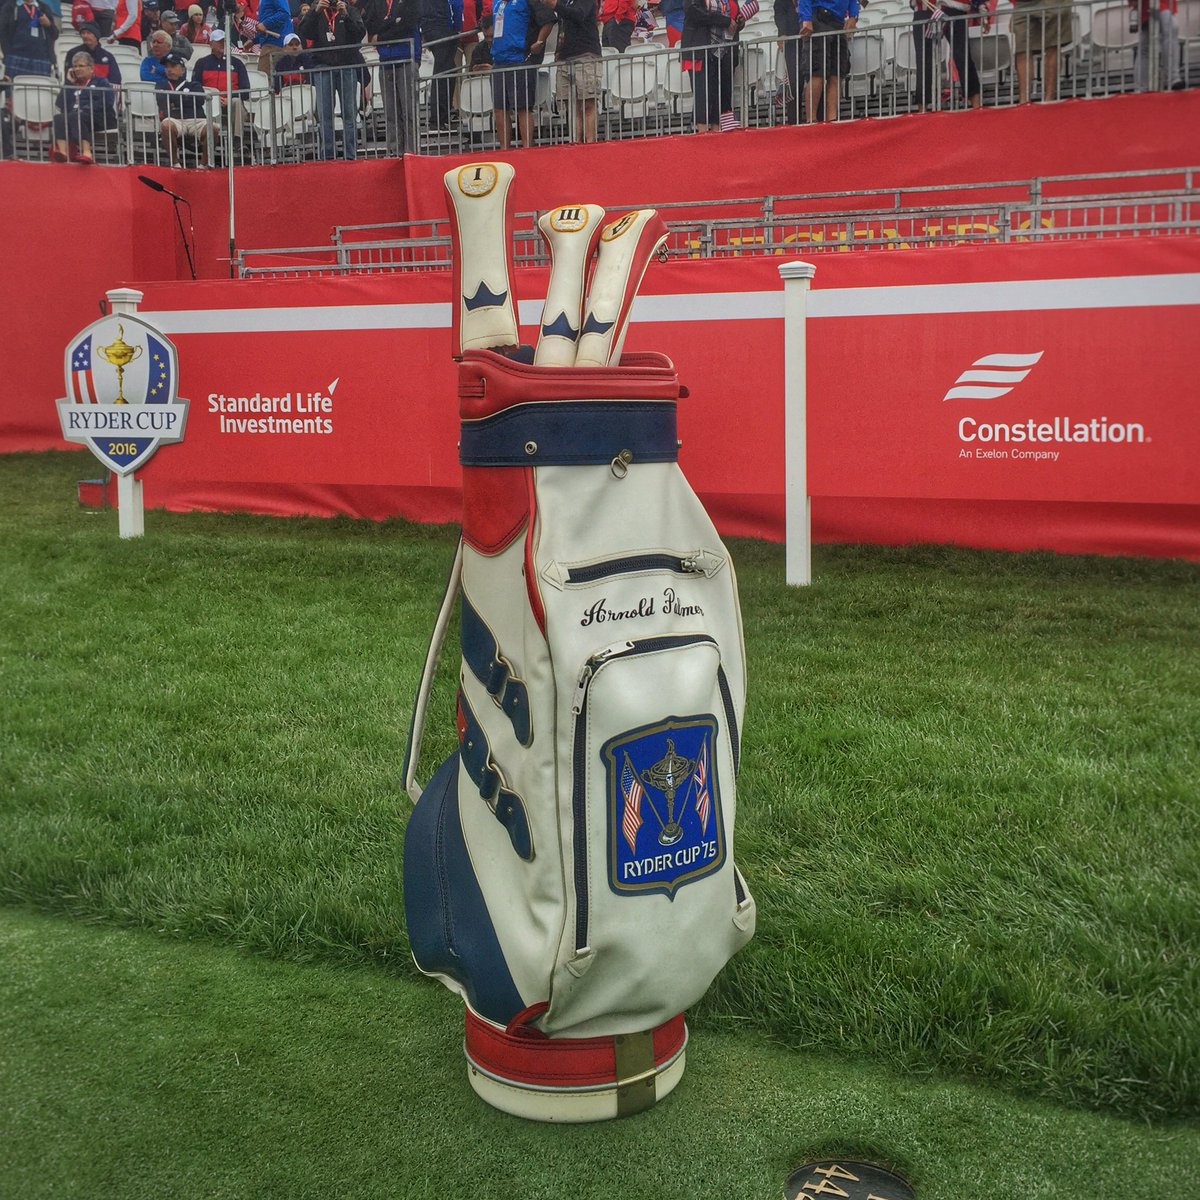 For those asking, it's a 1975 @rydercup bag of Arnold Palmer's on the first tee. Great touch. https://t.co/l2nqXXbA5K